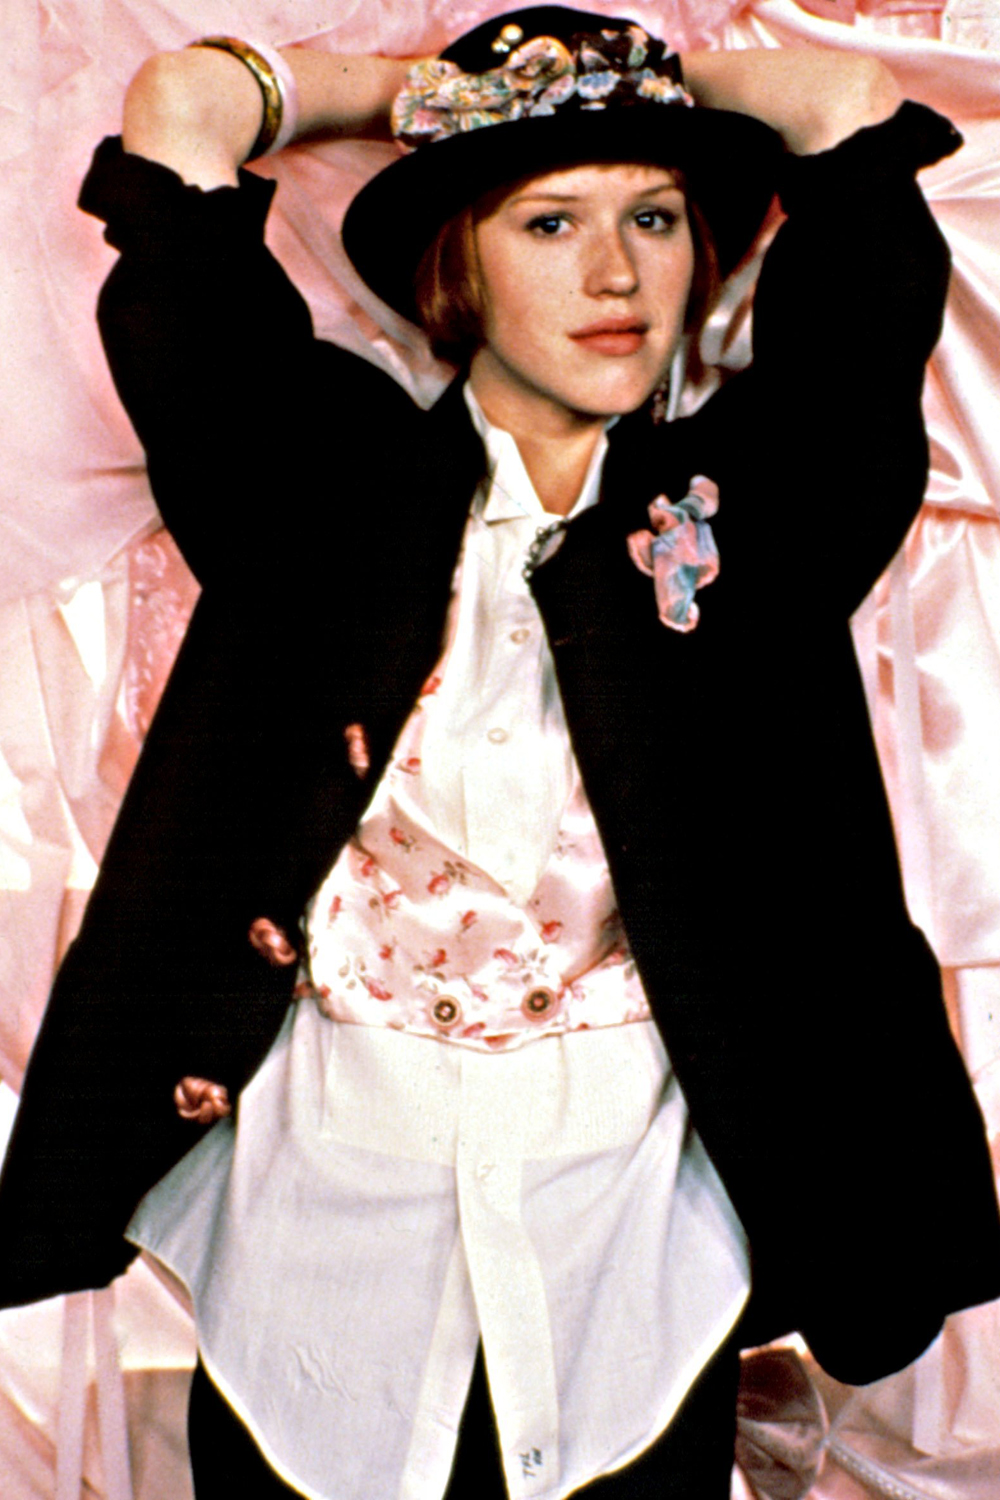 Molly Ringwald 80s fashion